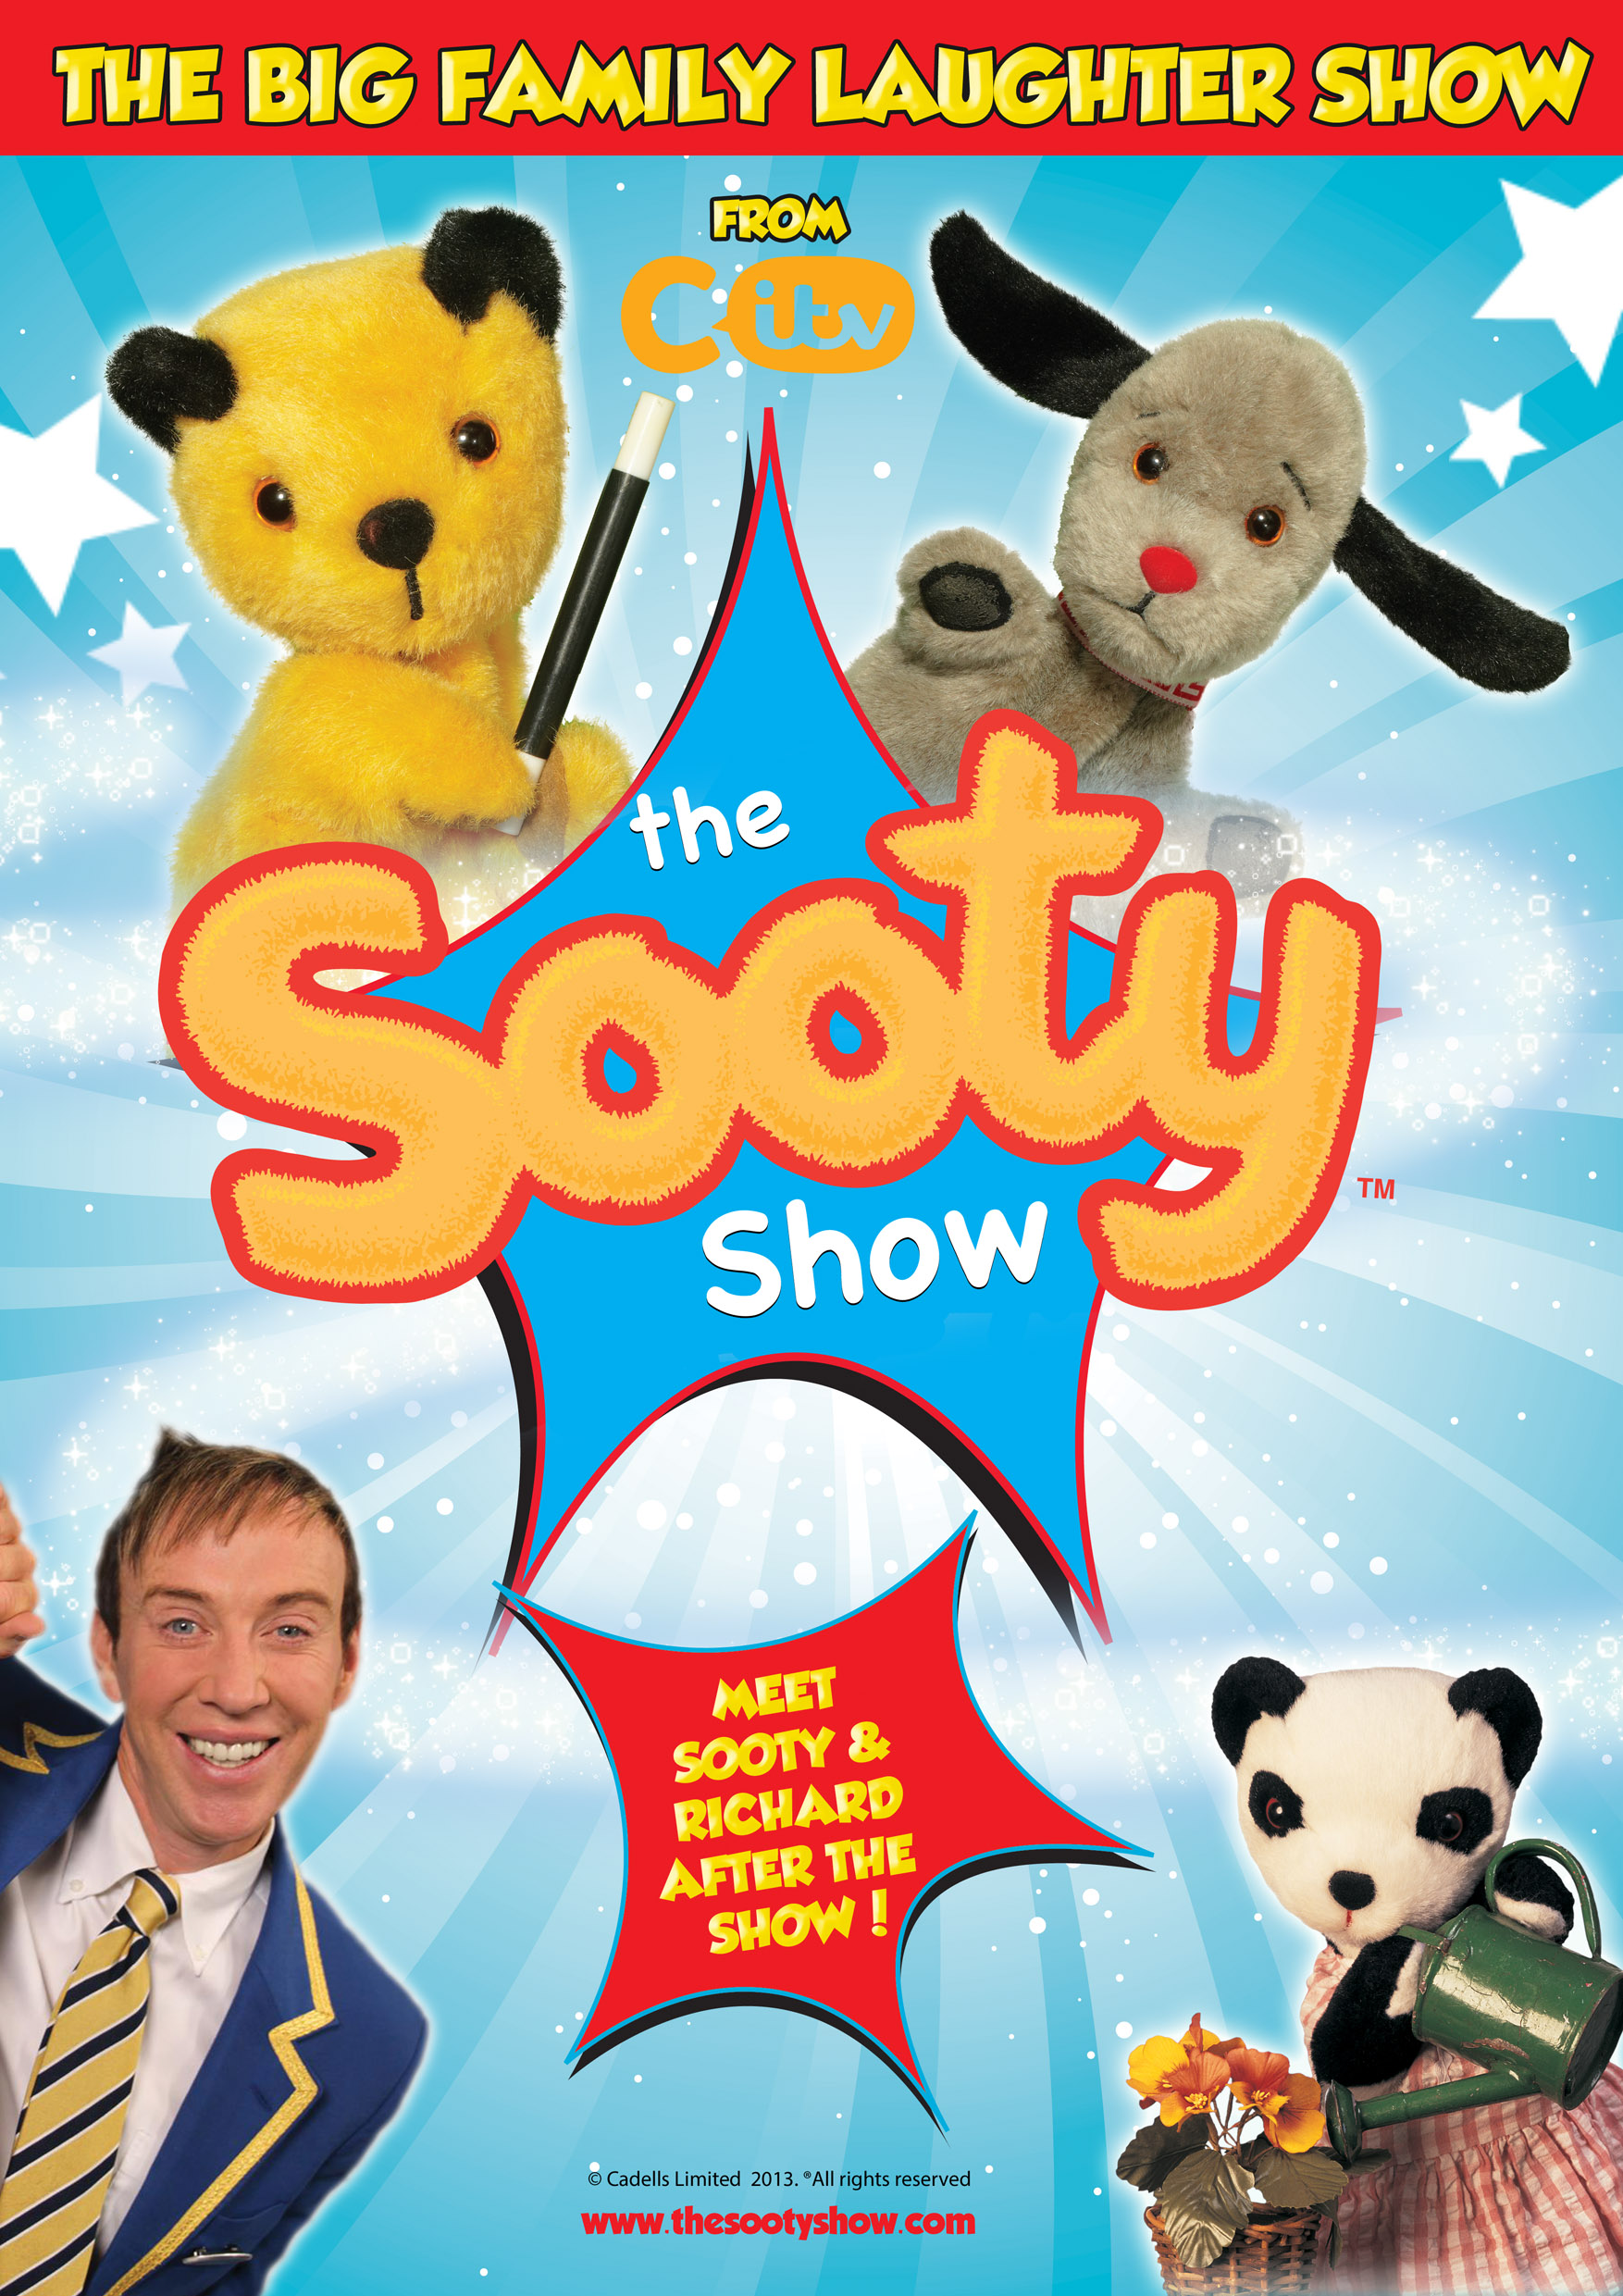 Sooty brochure and website image